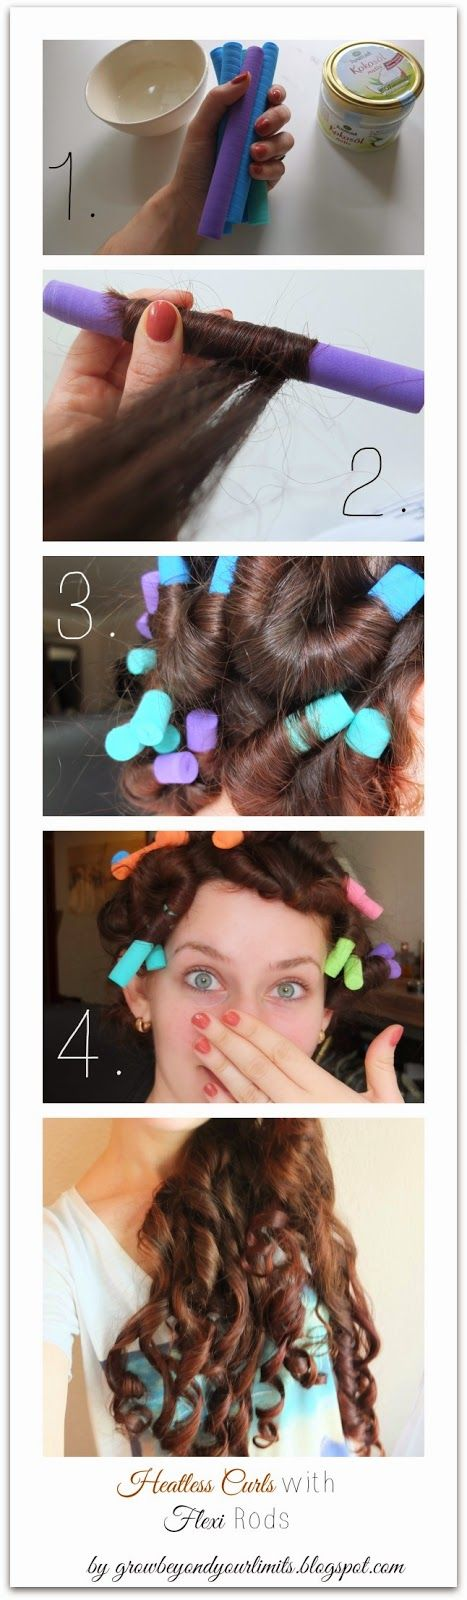 Grow Beyond Your Limits: Flechtwerk: Heatless Curls with Flexi Rods